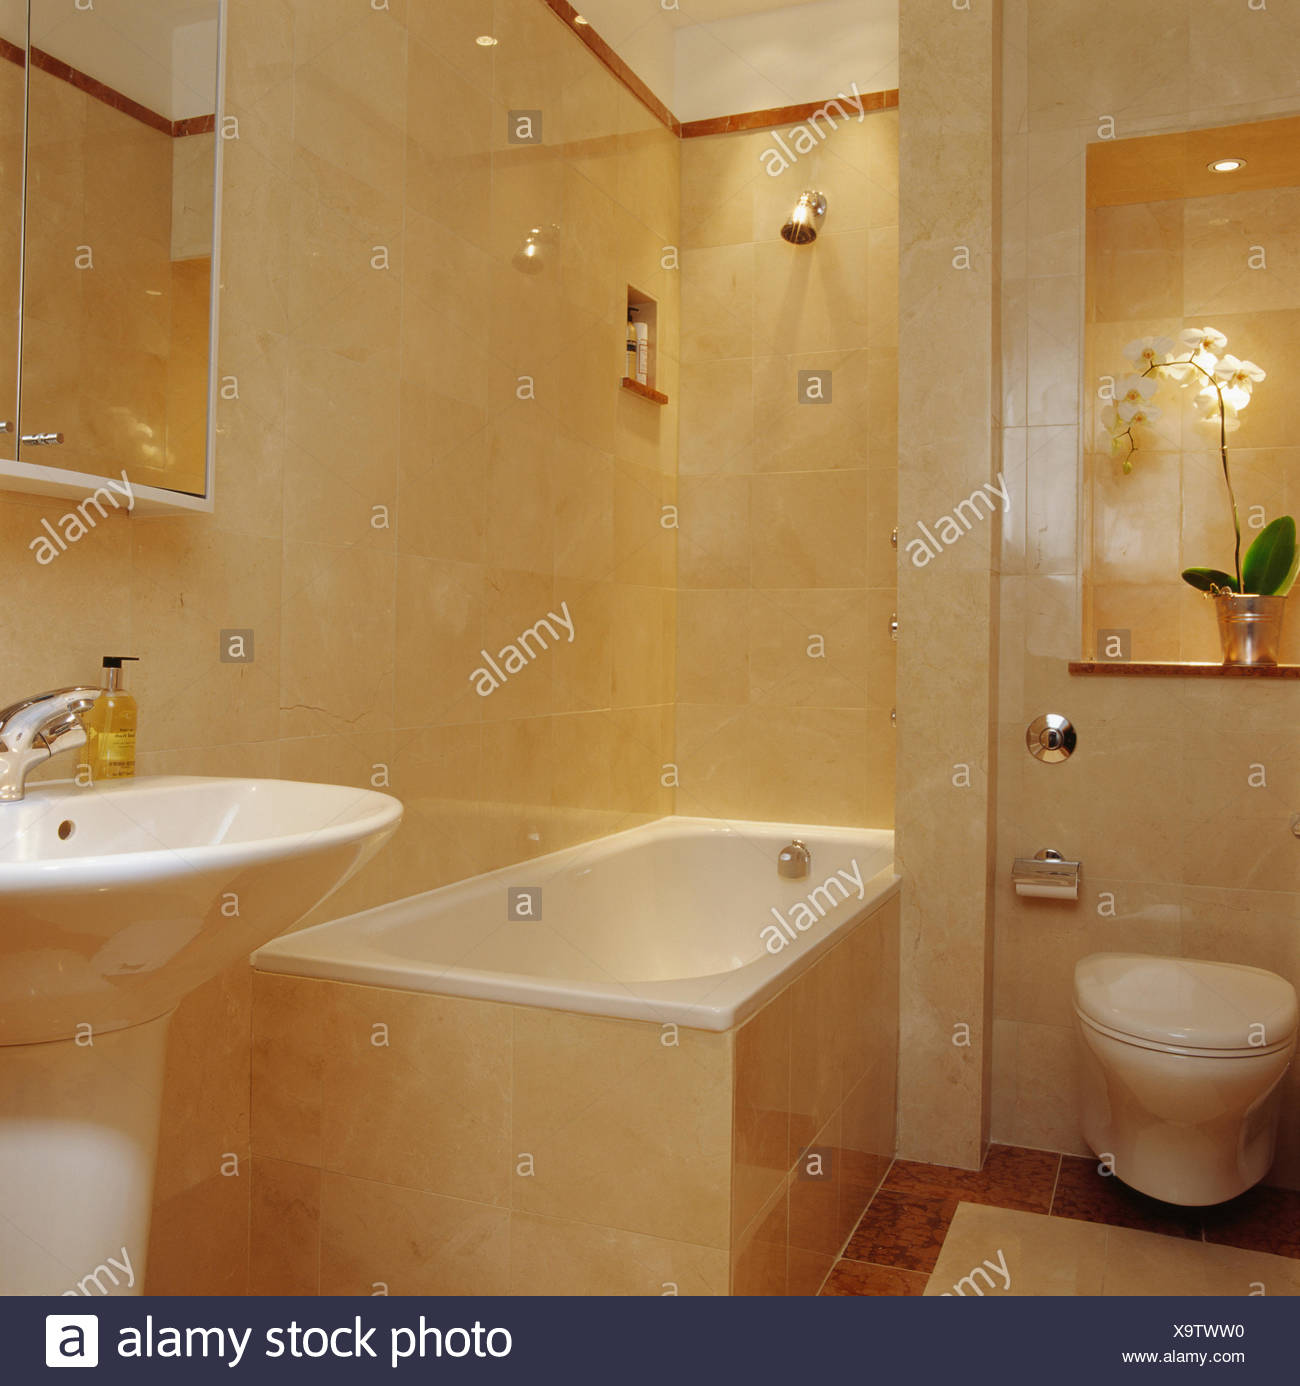 dusche ber badewanne im modernen travertin fliesen bad stockfoto bild 281444940 alamy. Black Bedroom Furniture Sets. Home Design Ideas